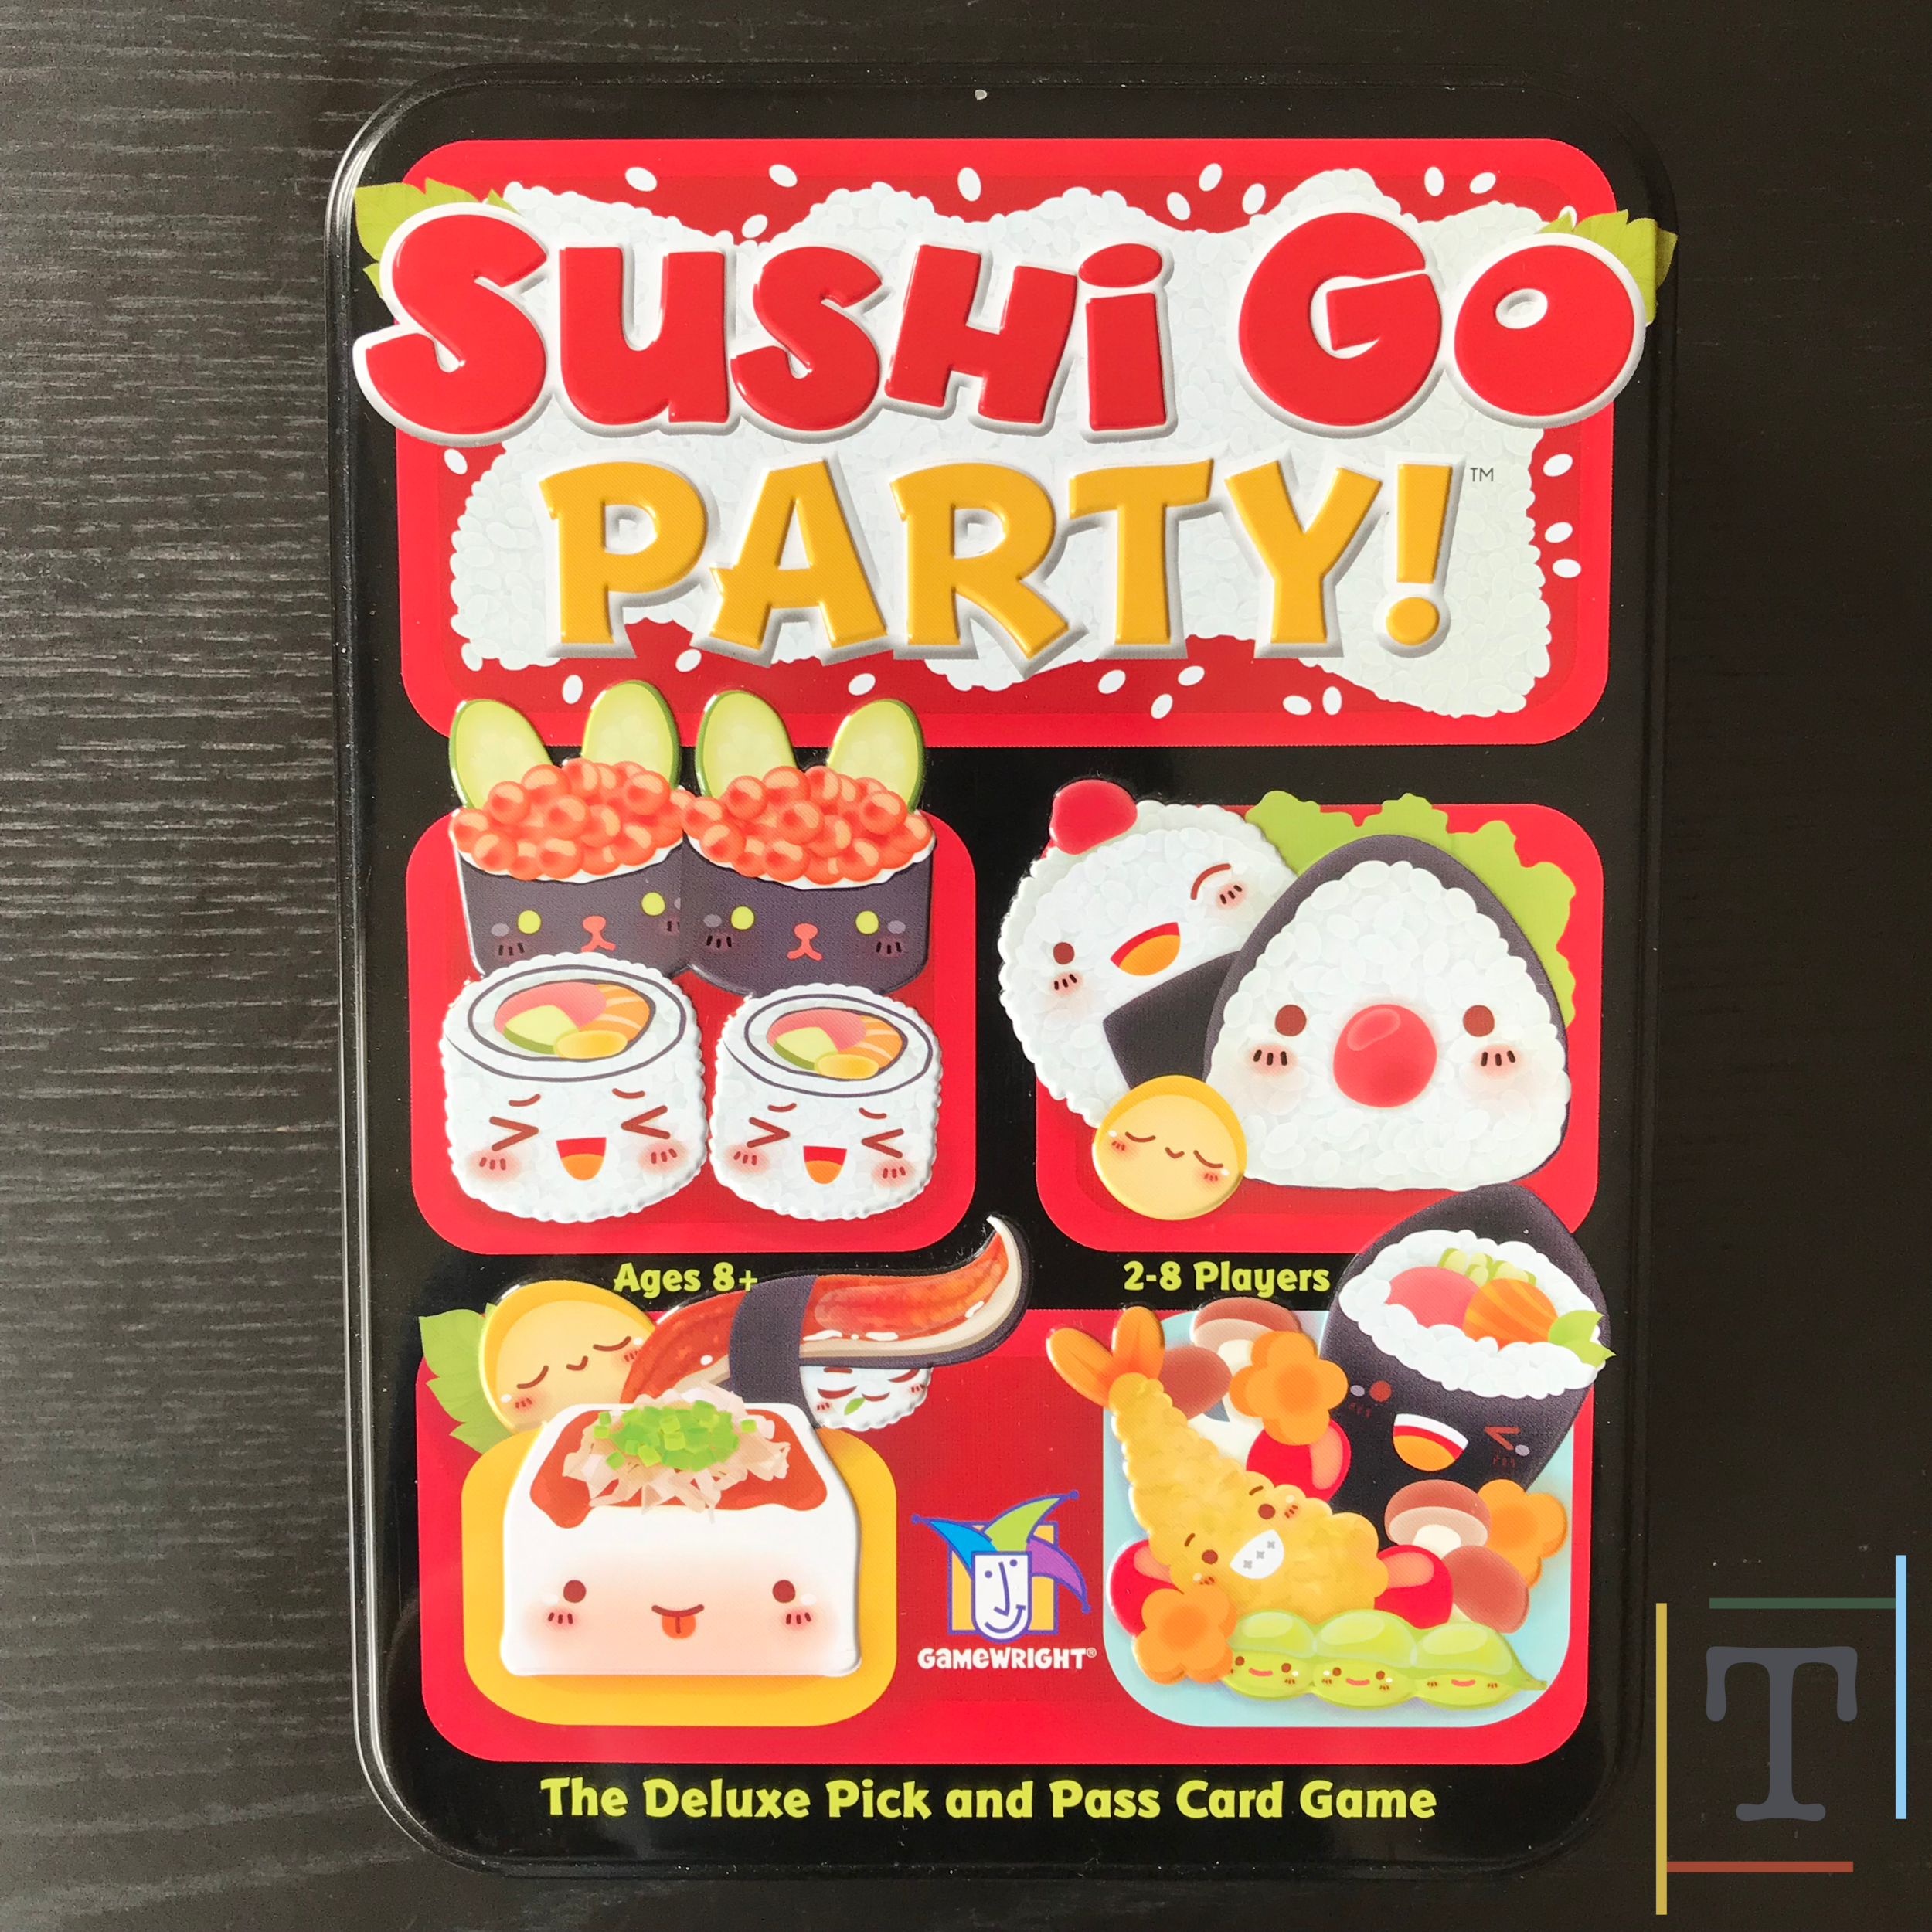 Sushi Go Party! Tin.png